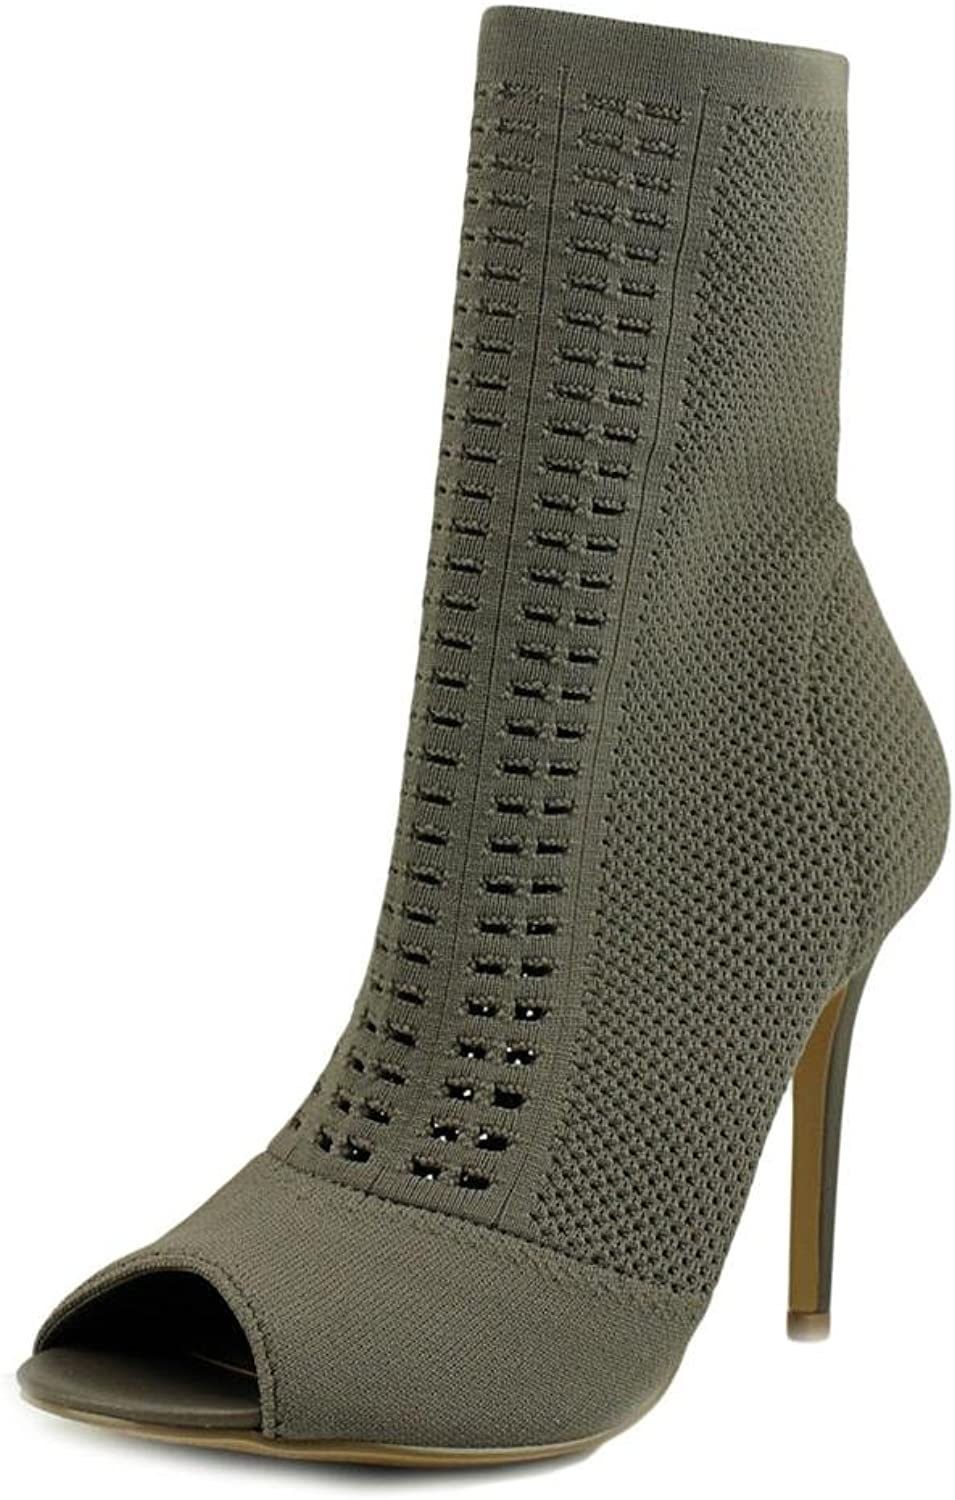 Charles by Charles David Women's Rebellious Open Toe Bootie